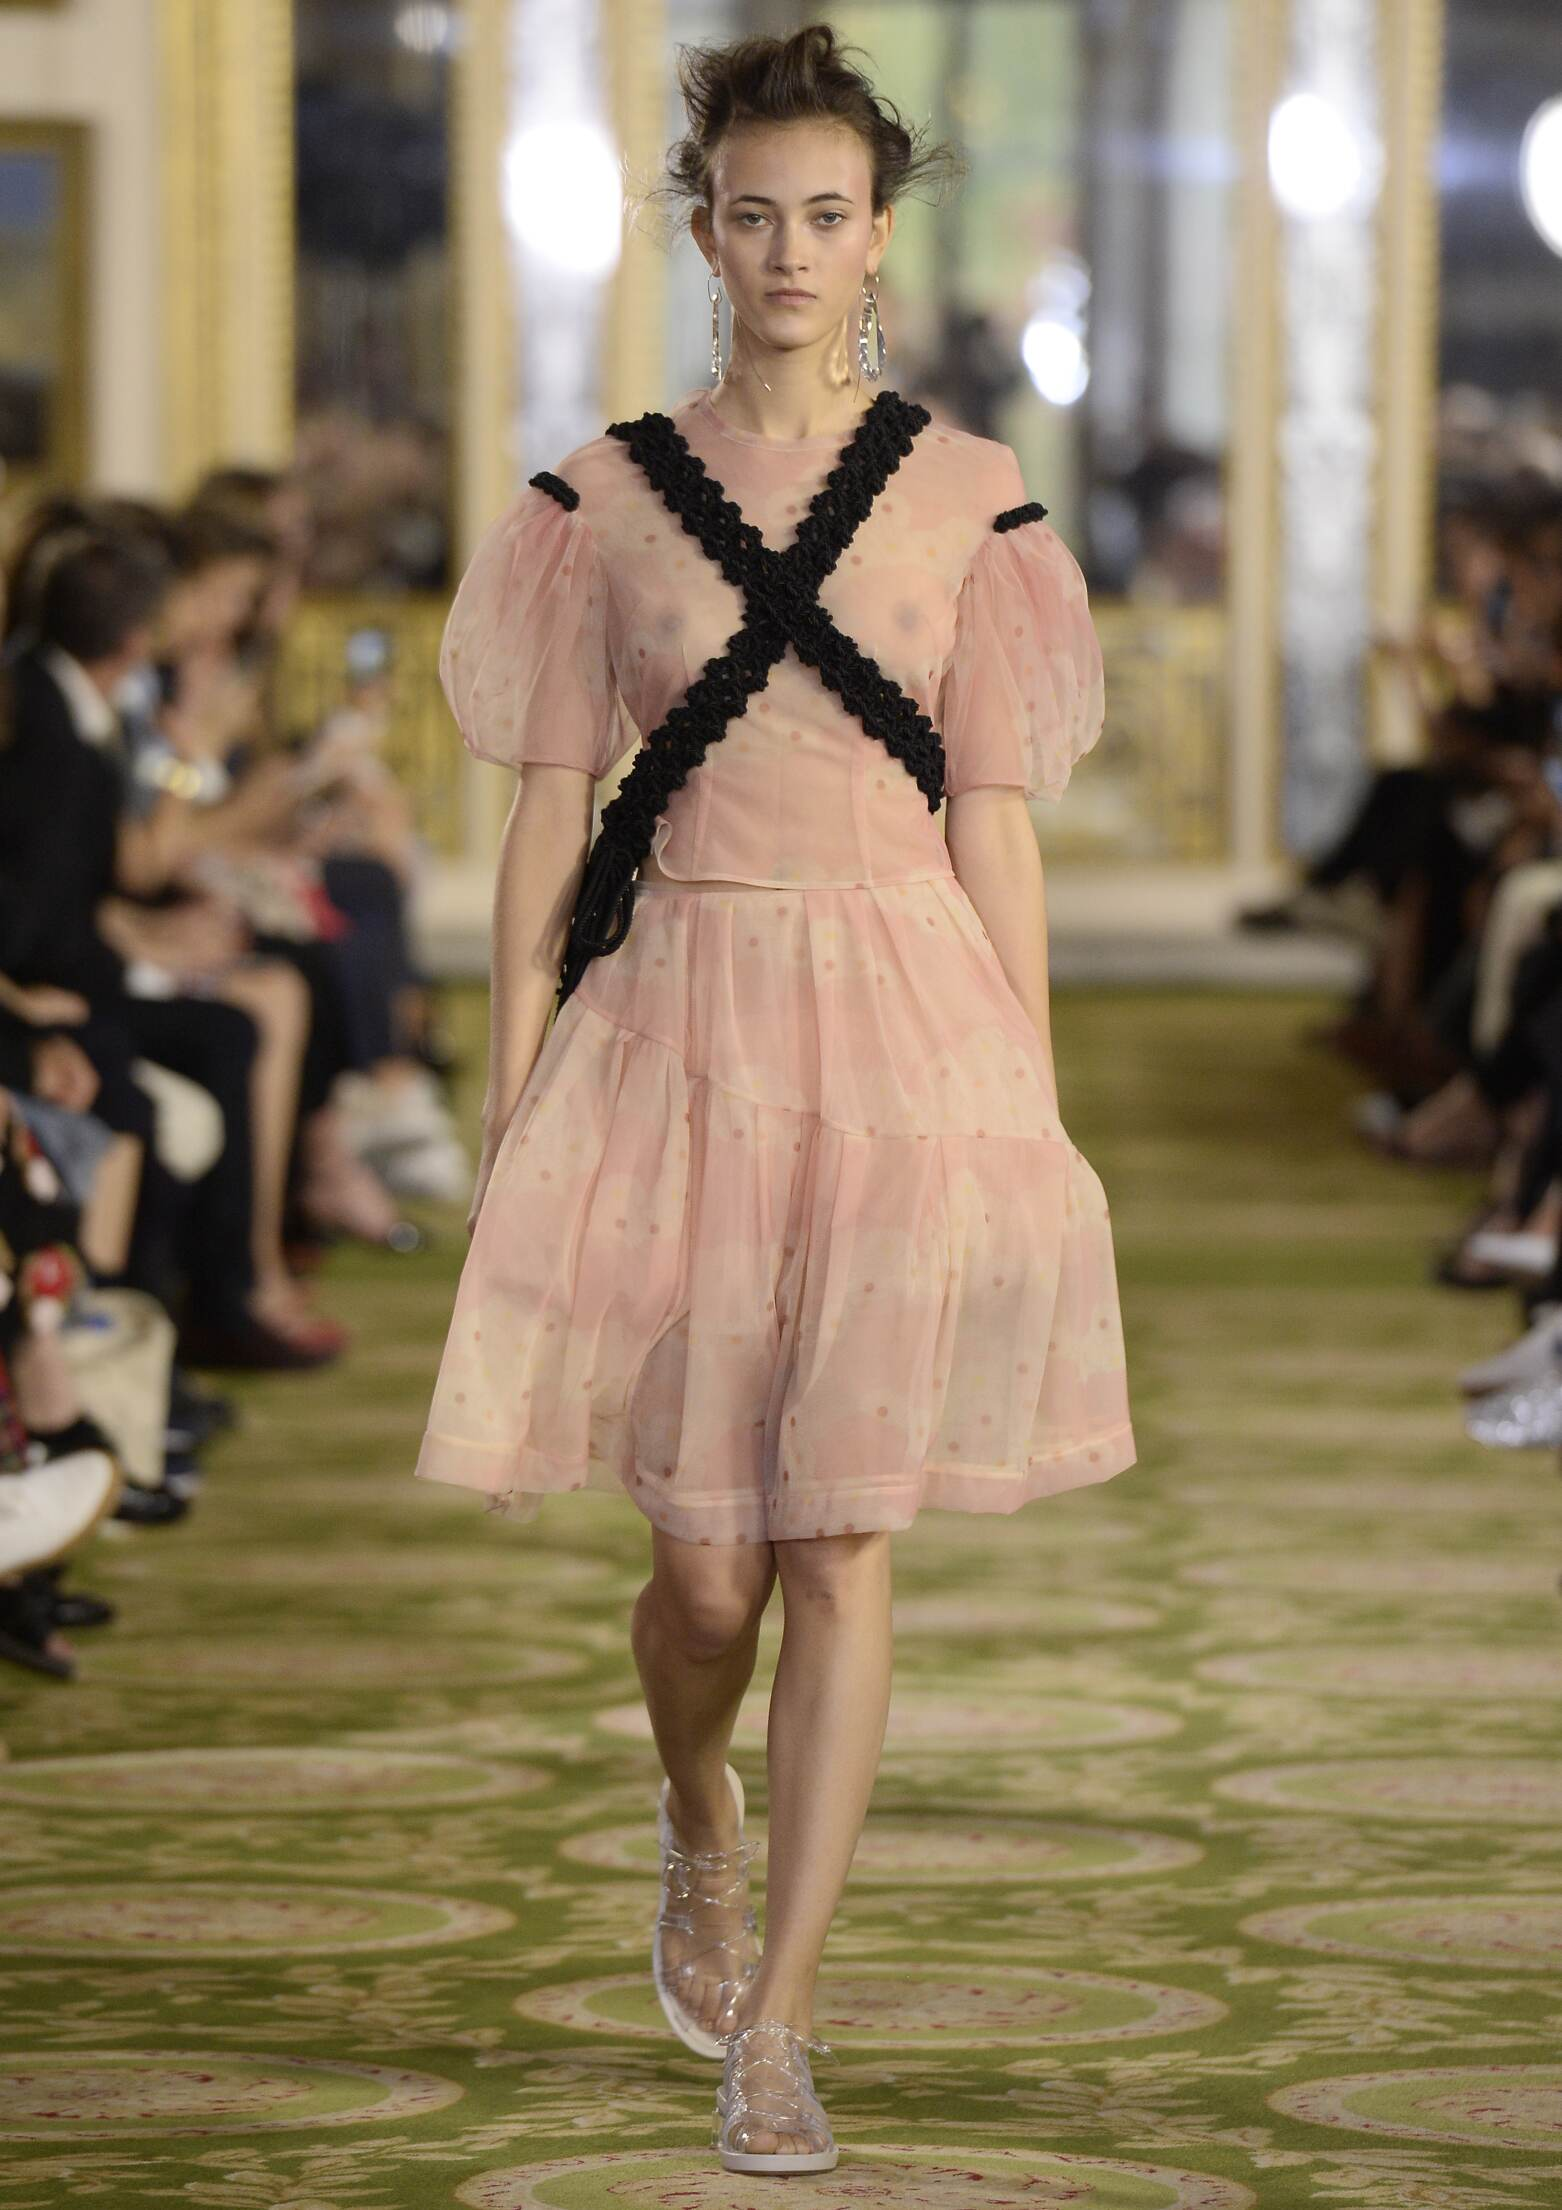 SIMONE ROCHA SPRING SUMMER 2016 WOMEN S COLLECTION   The Skinny Beep Spring Fashion Woman Simone Rocha Collection